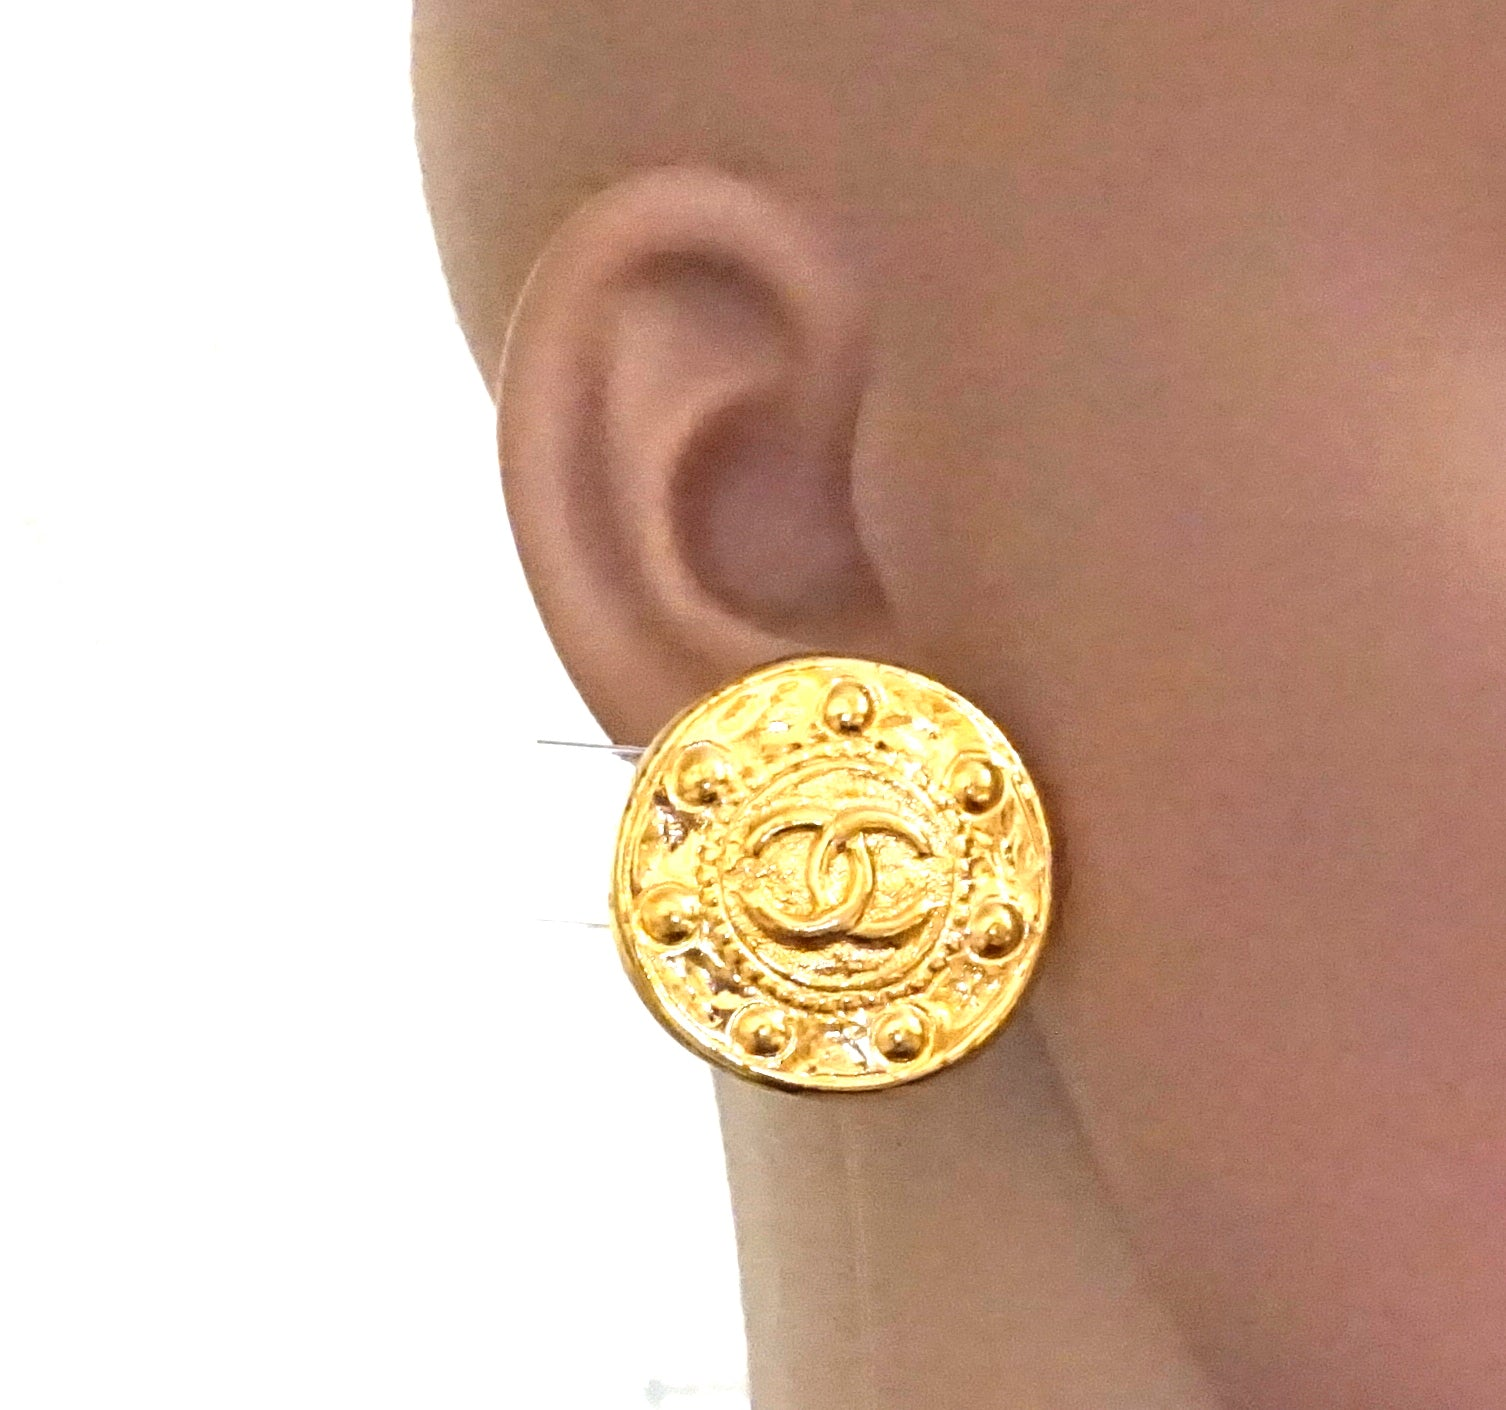 Chanel Médallion CC Textured Round Clip On Earrings with Perfume Set